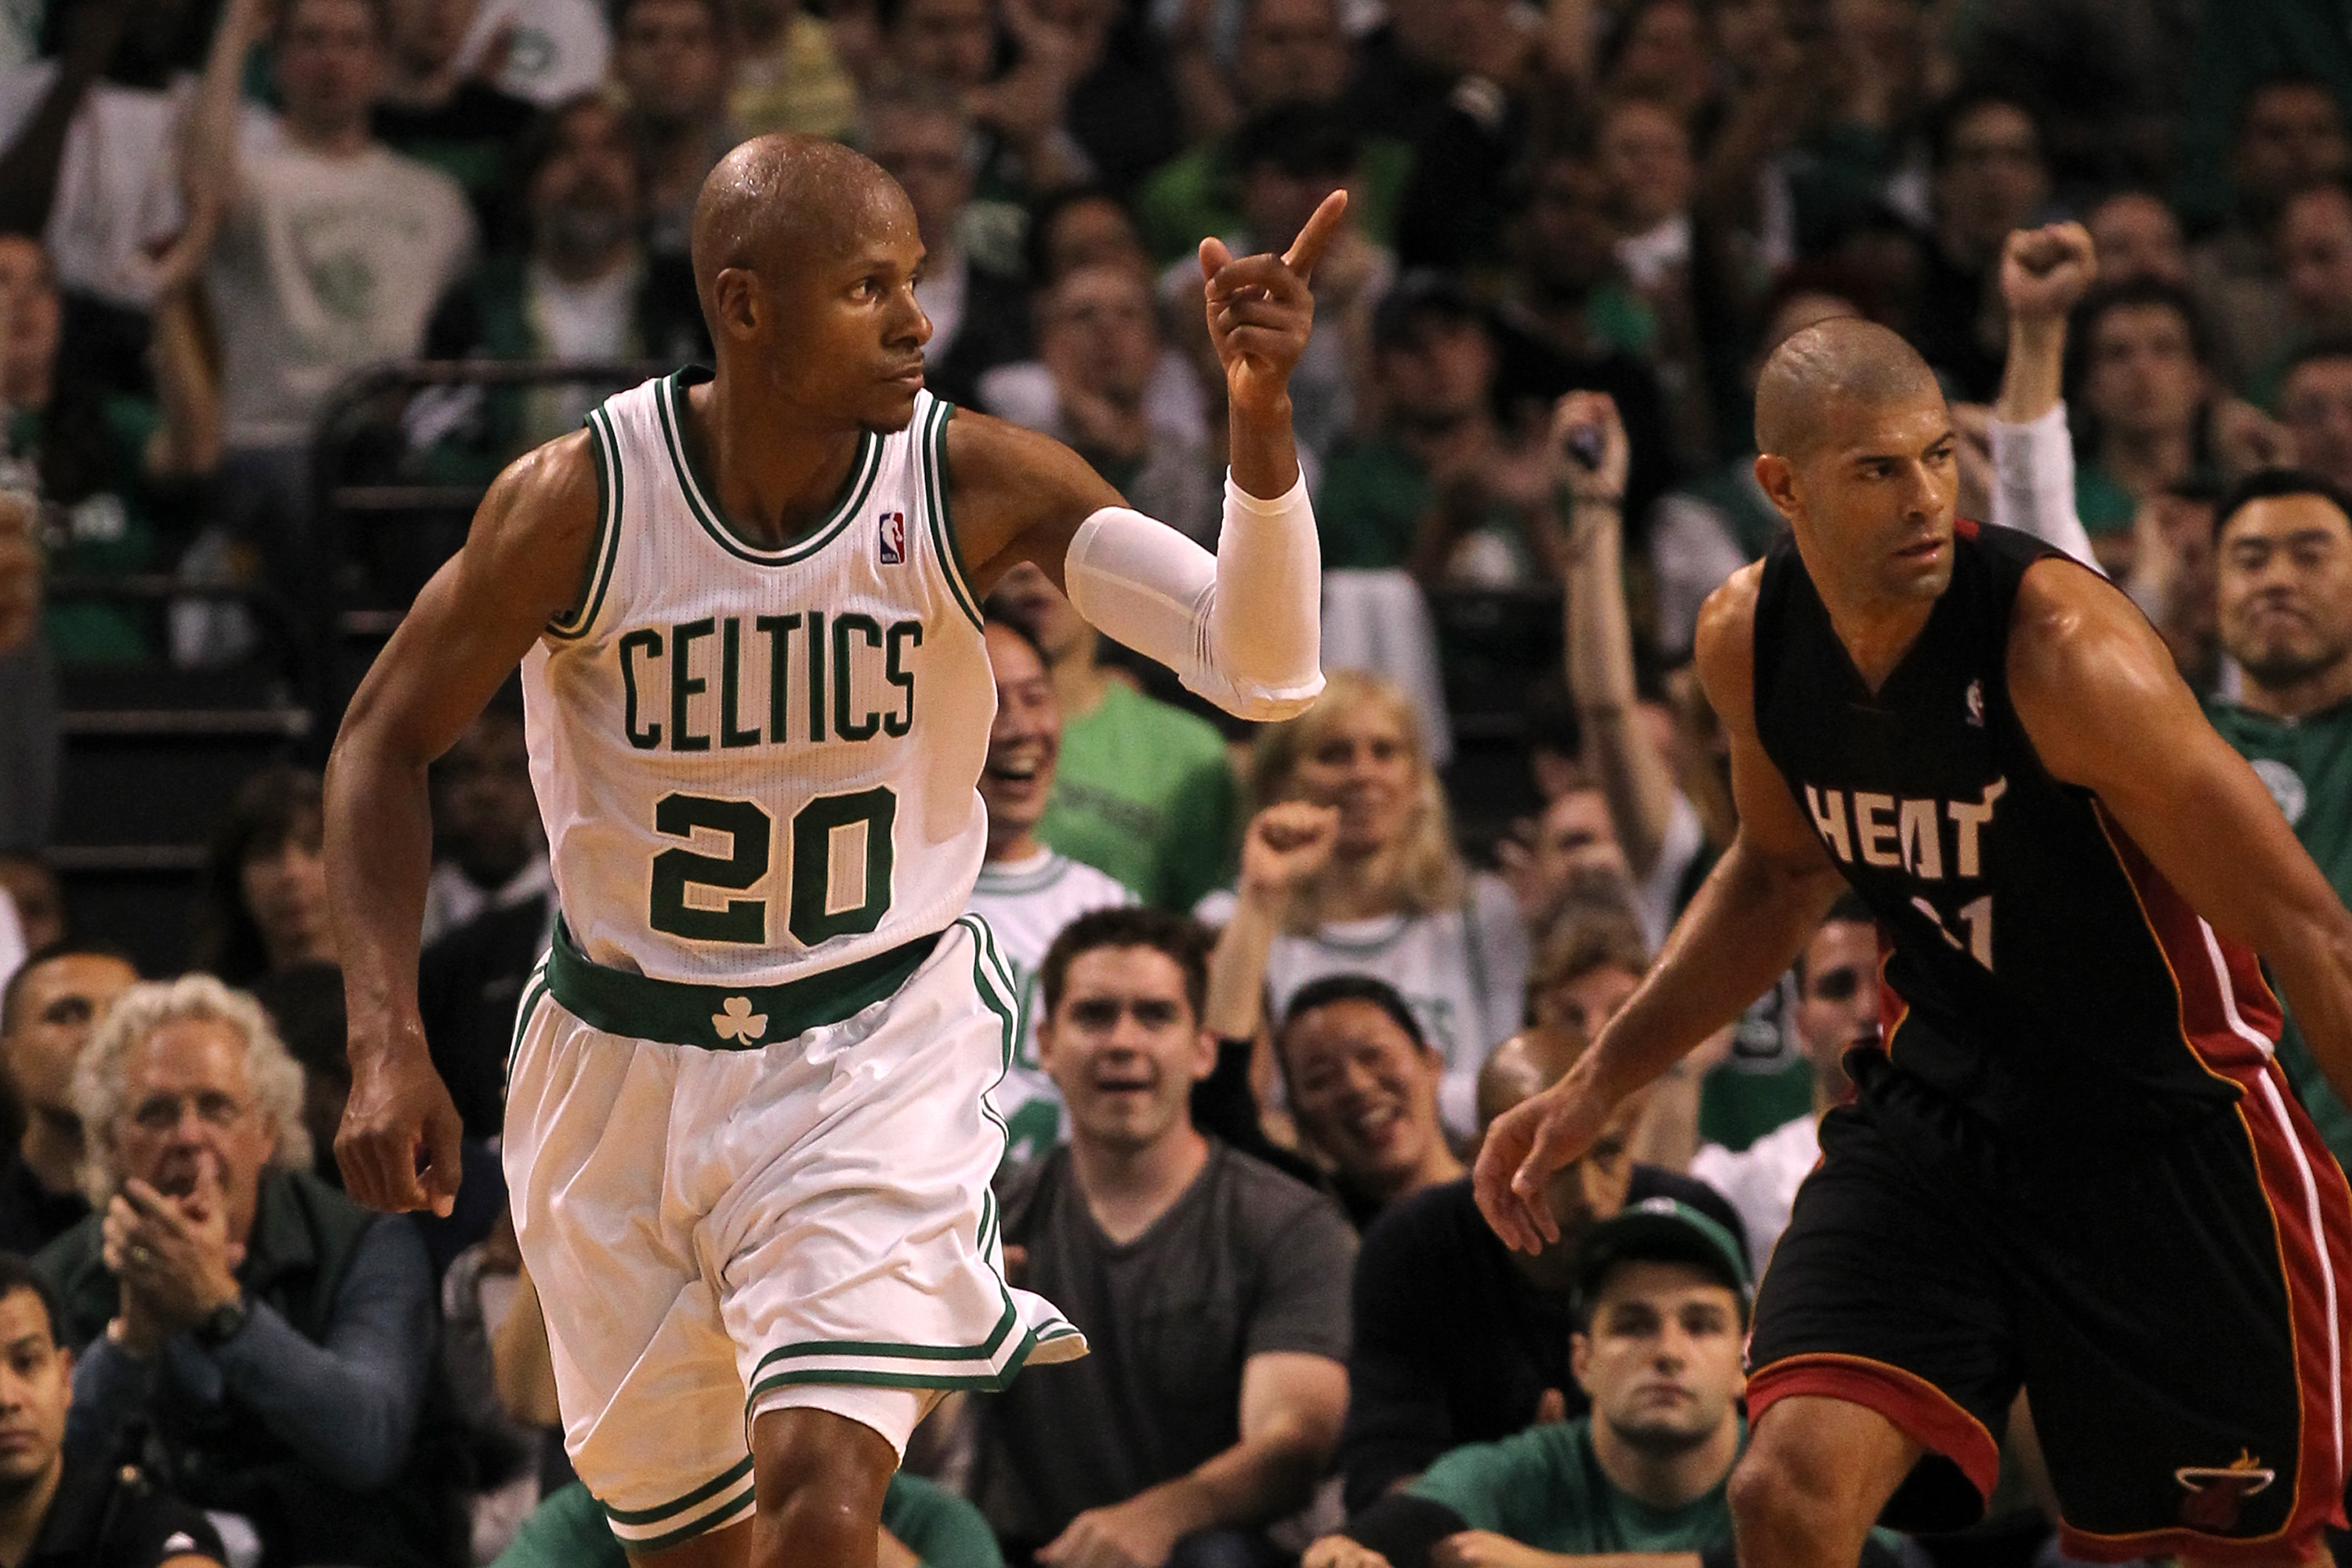 Free-agent guard Ray Allen is drawing interest from several teams, including the Heat. (Getty Images)